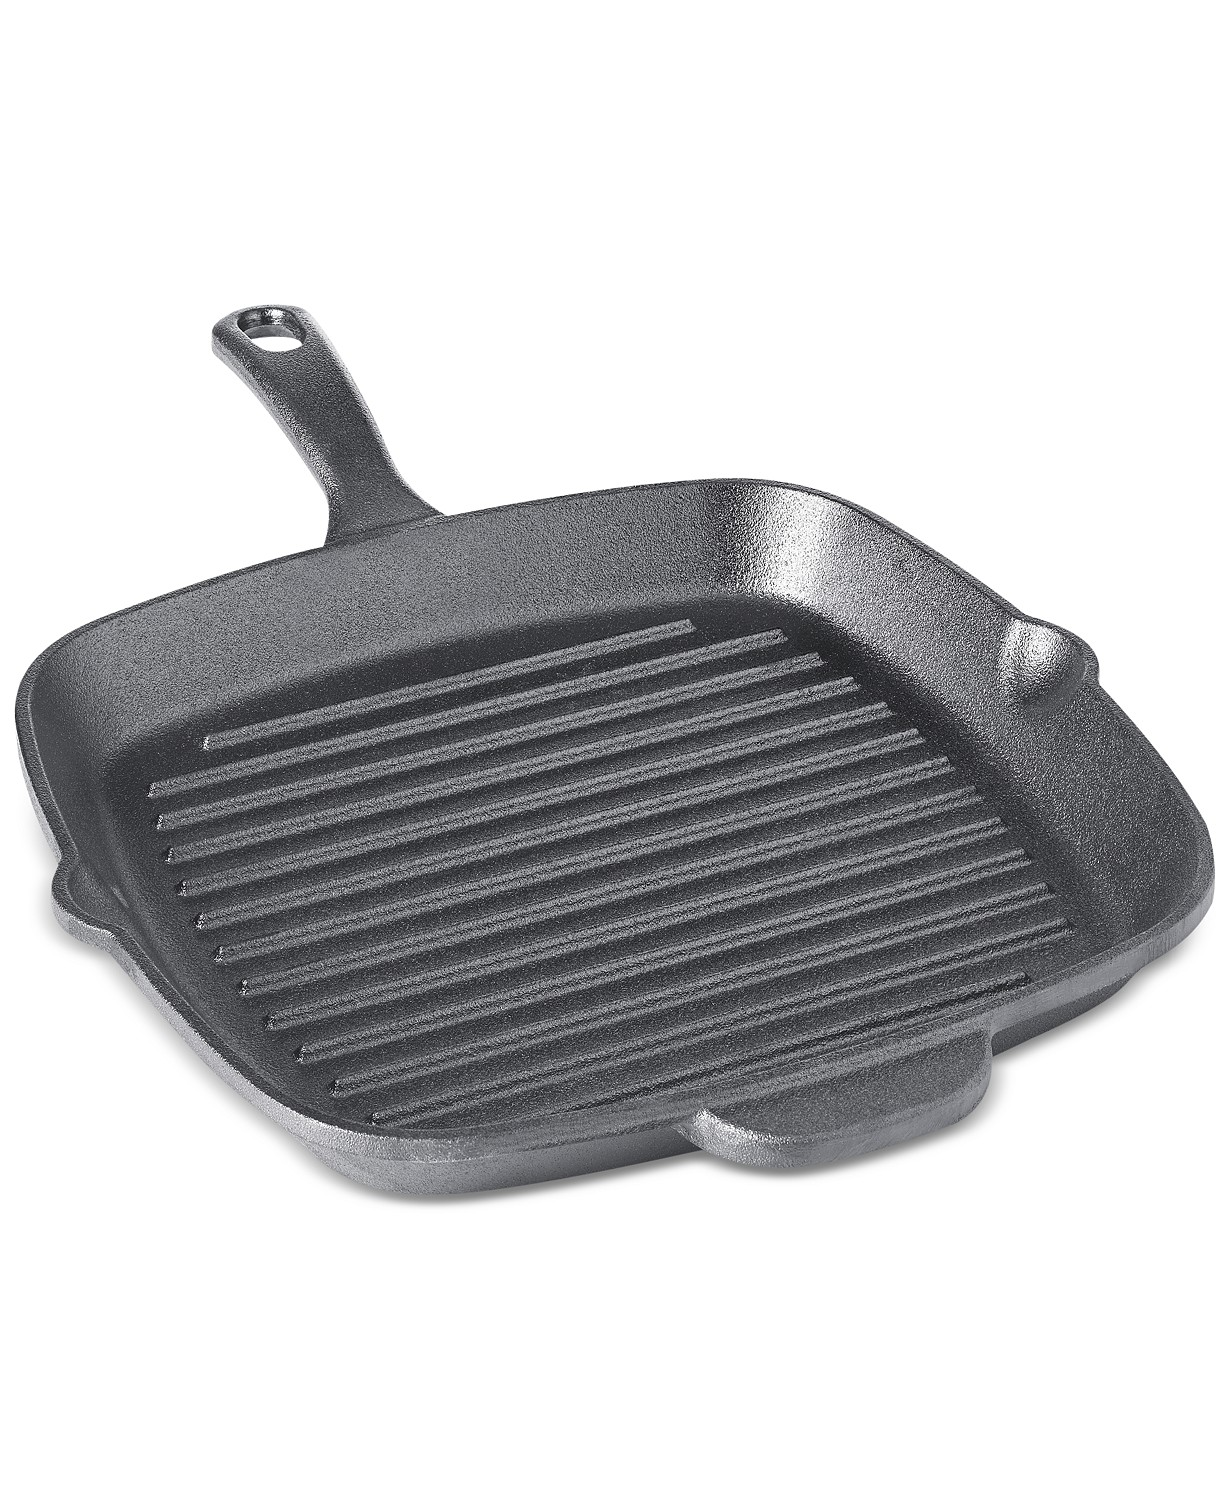 "Martha Stewart Essentials 10"" Grill Pan (Black)"